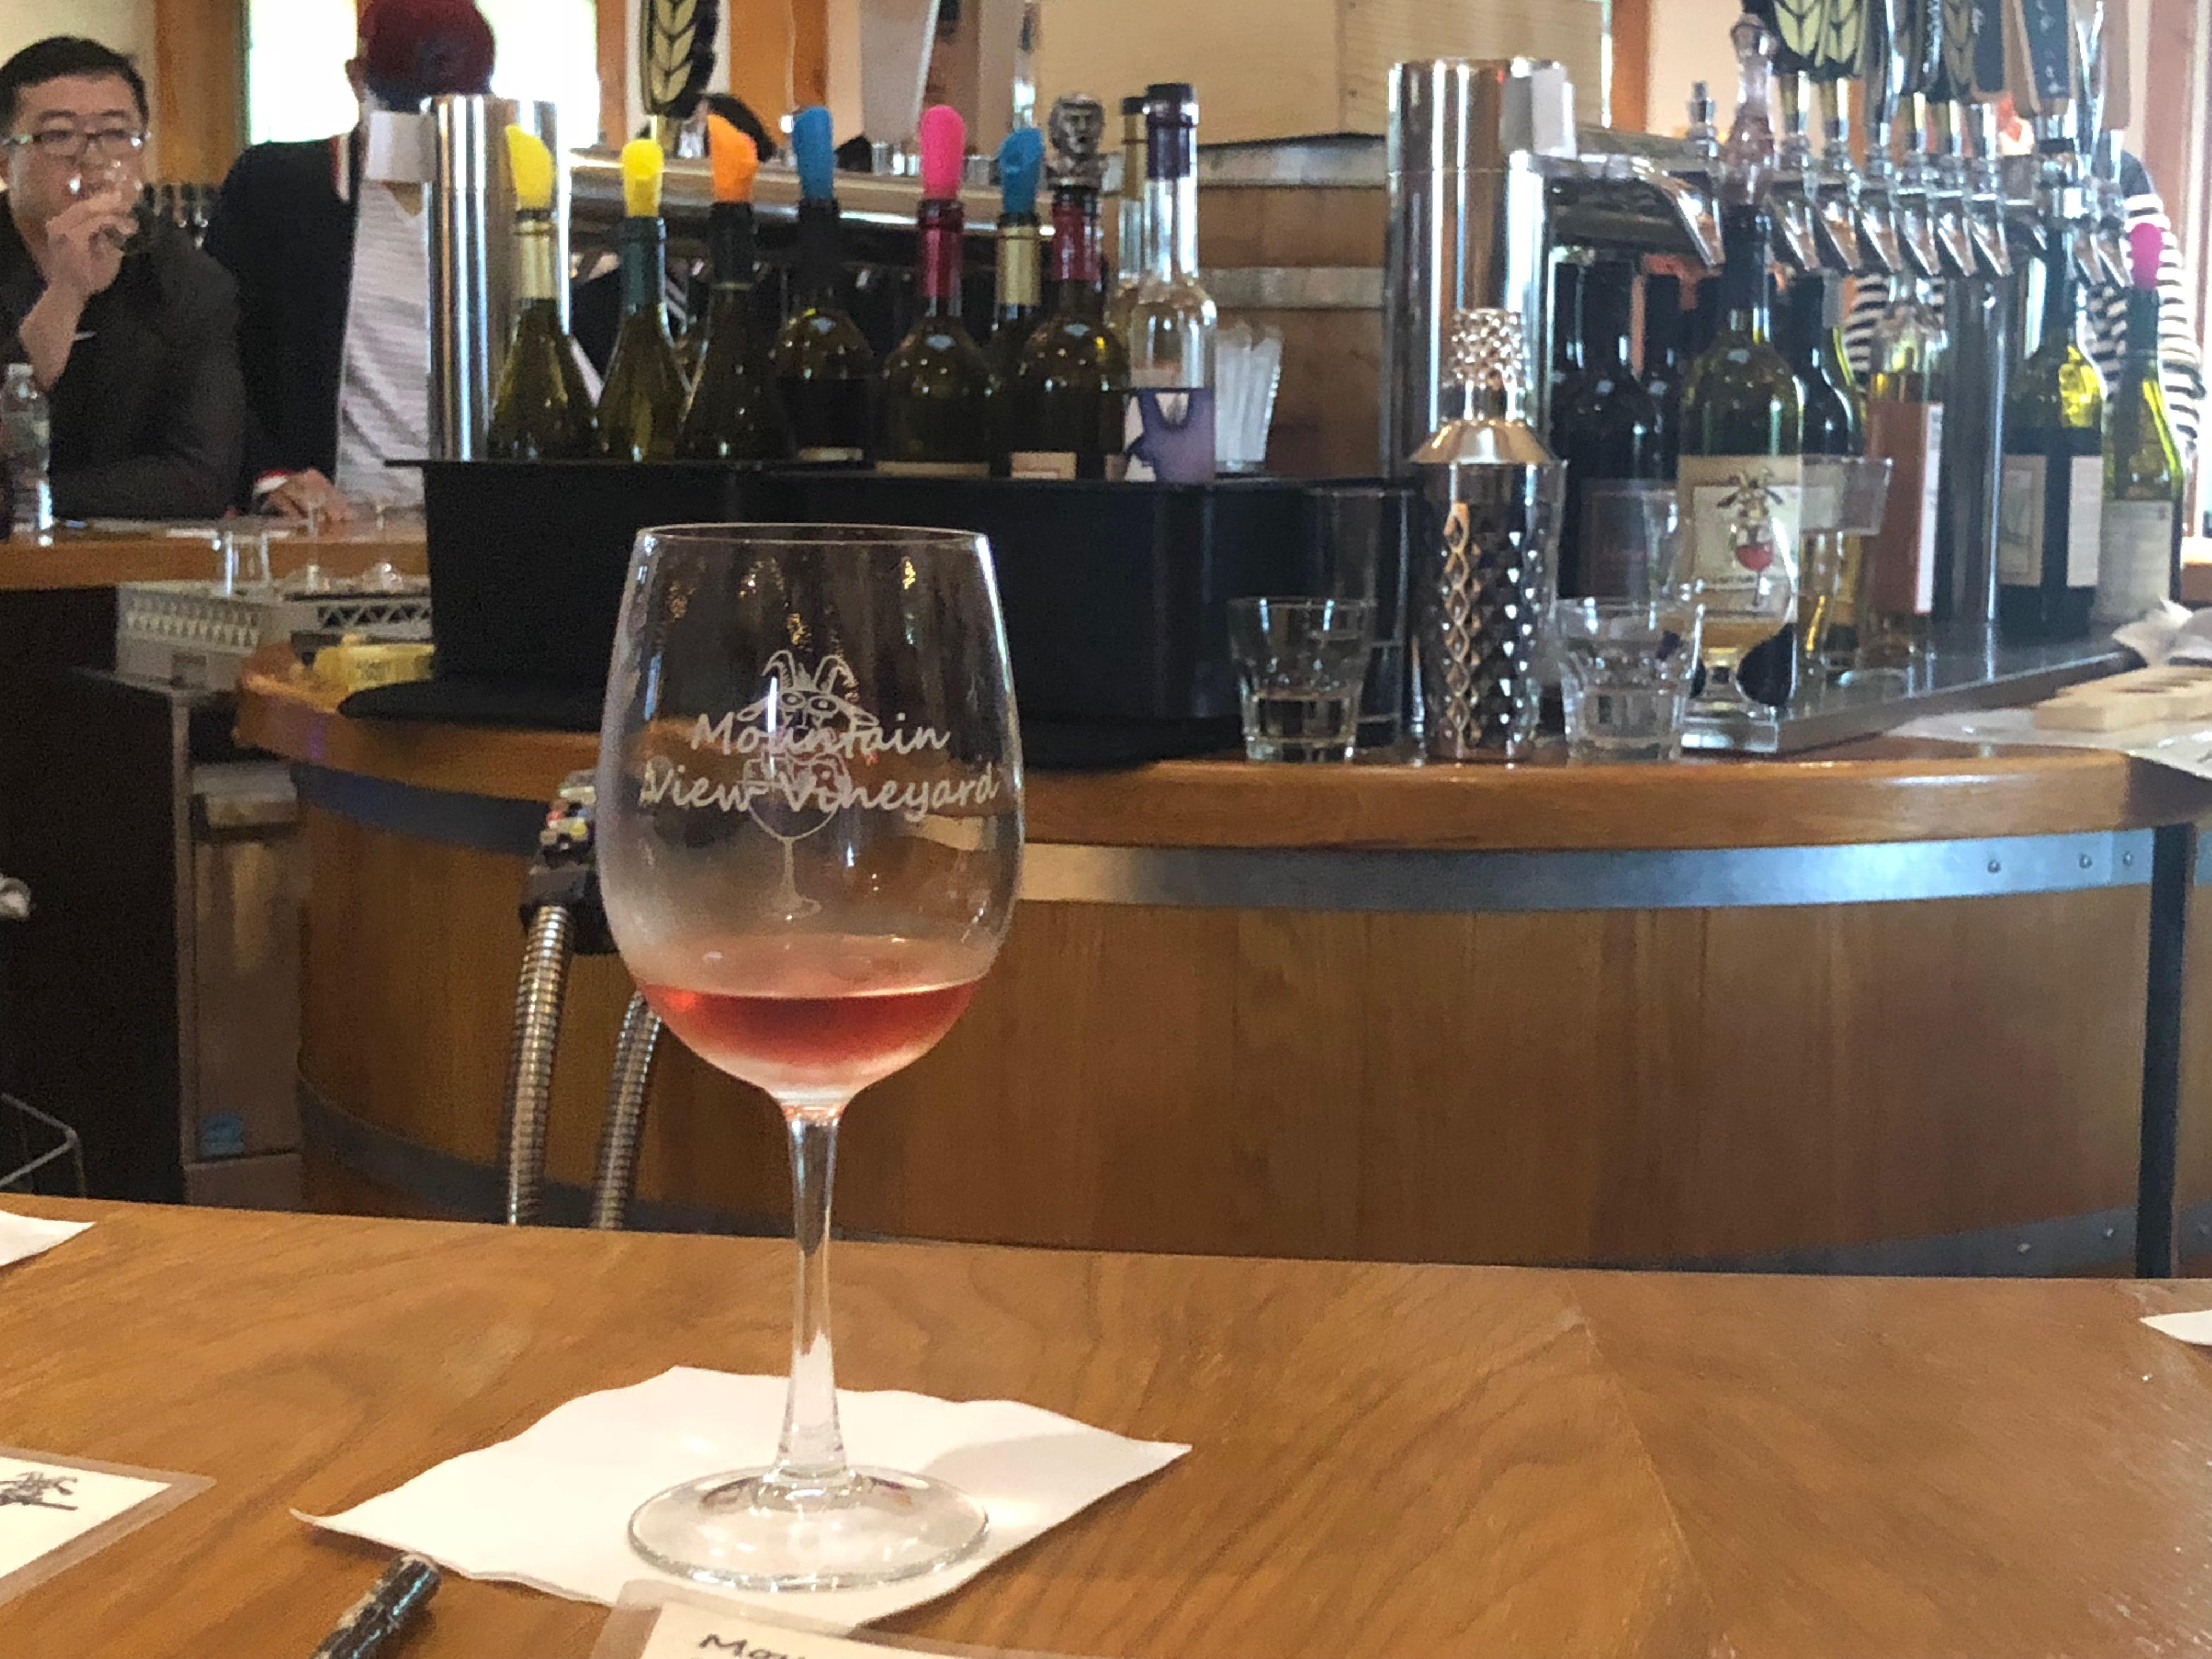 The Mountain View Vineyard on the Pocono Wine Trail will even let you bring your wine tasting glass home with you.{ }{ }(Image: Julie Gallagher)